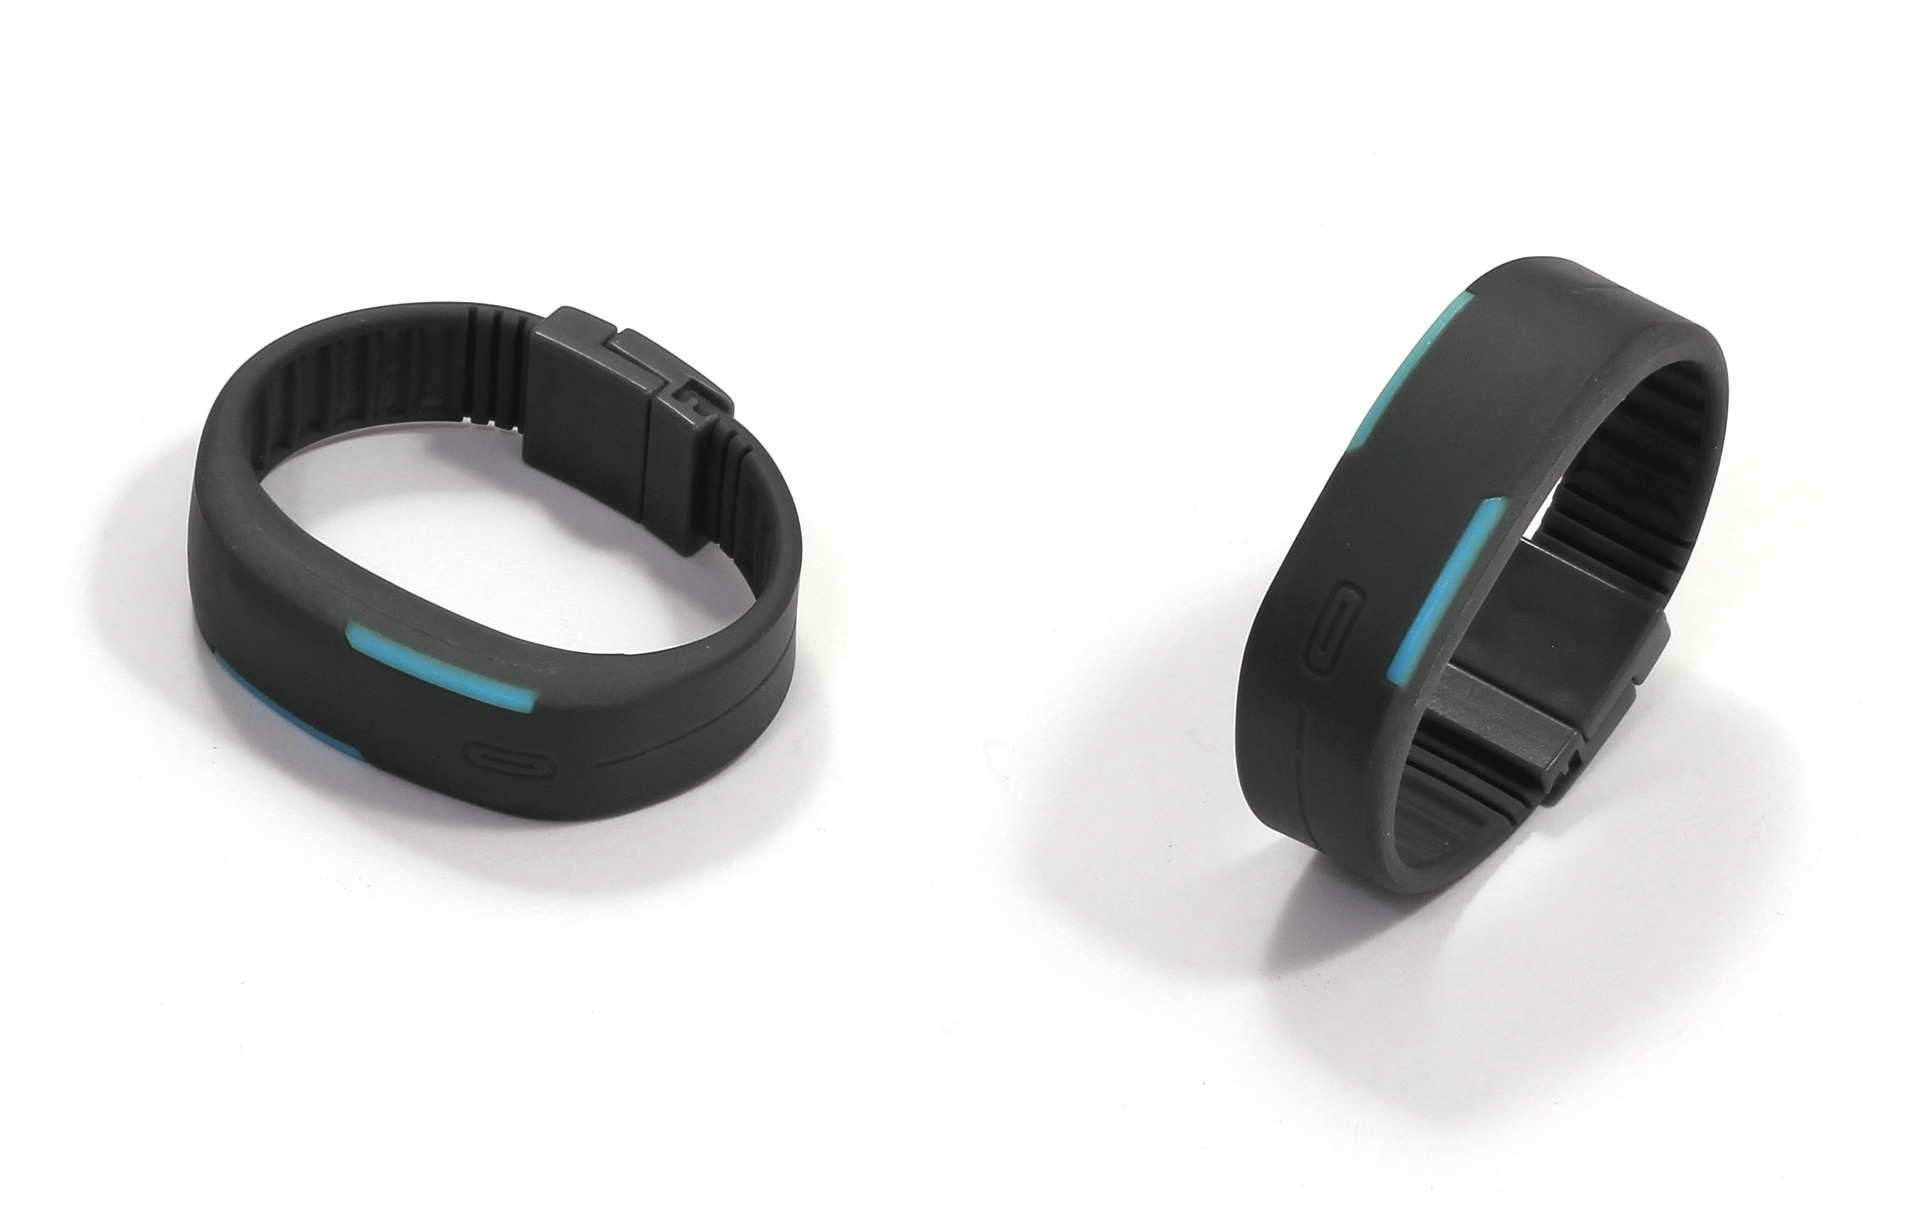 Xiaomi and Mastercard introduced Mi Smart Band 4 NFC with contactless payment function in Russia